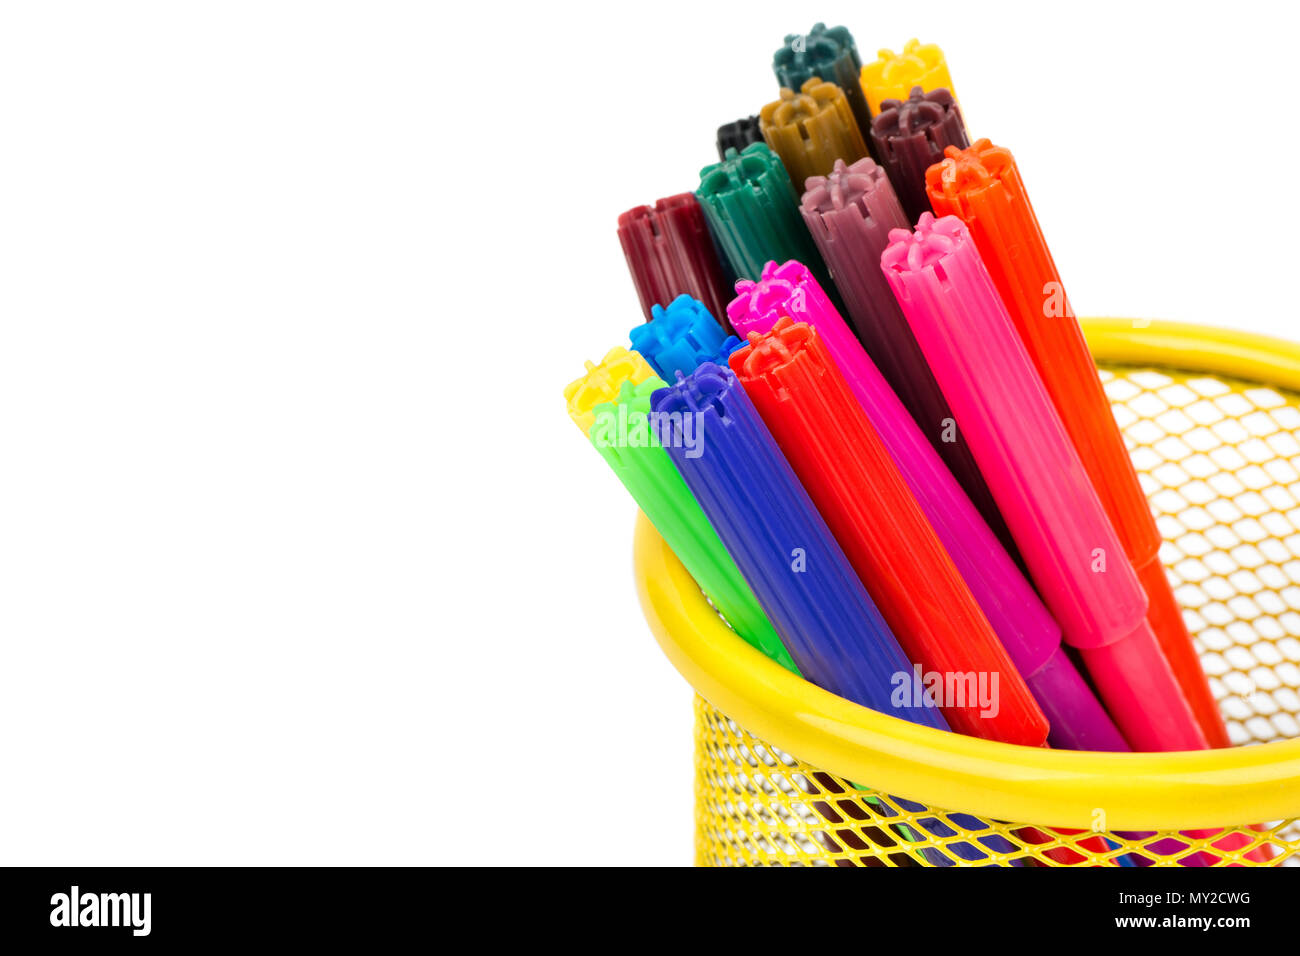 Several multi-colored markers in the pencil case close up on a blank white background - Stock Image